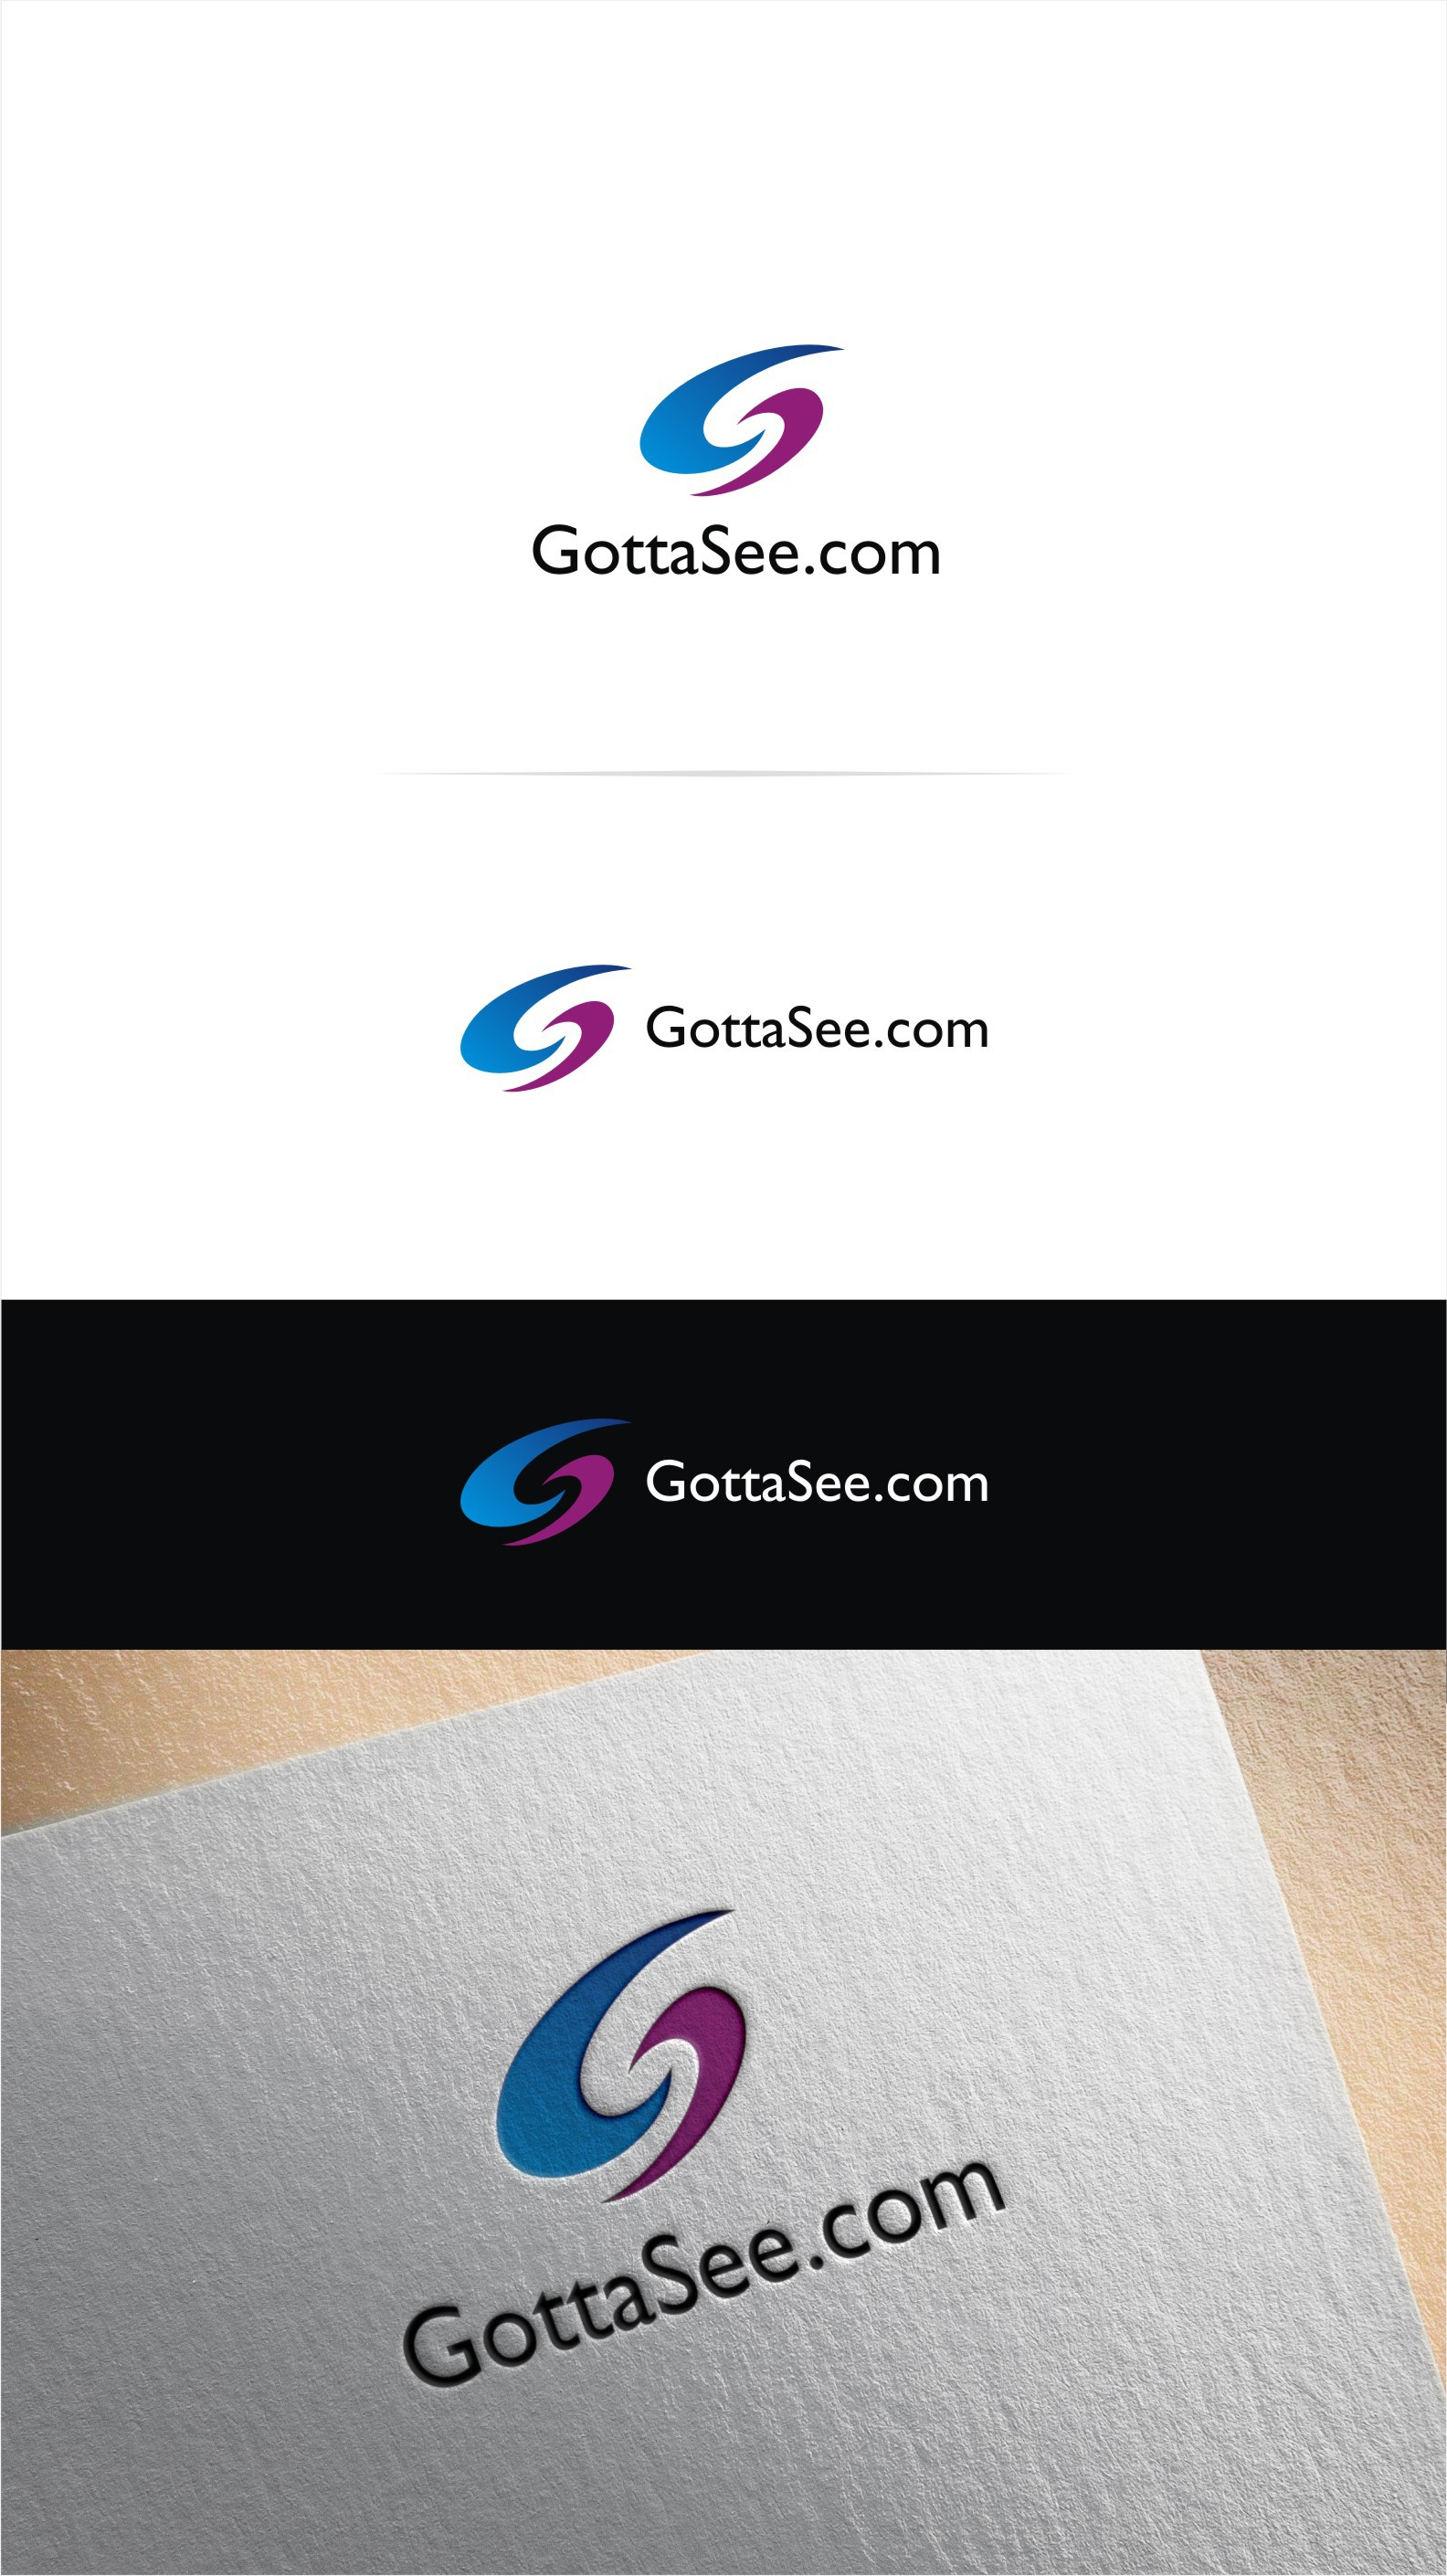 Create an Amazing Header/Logo for GottaSee.com!